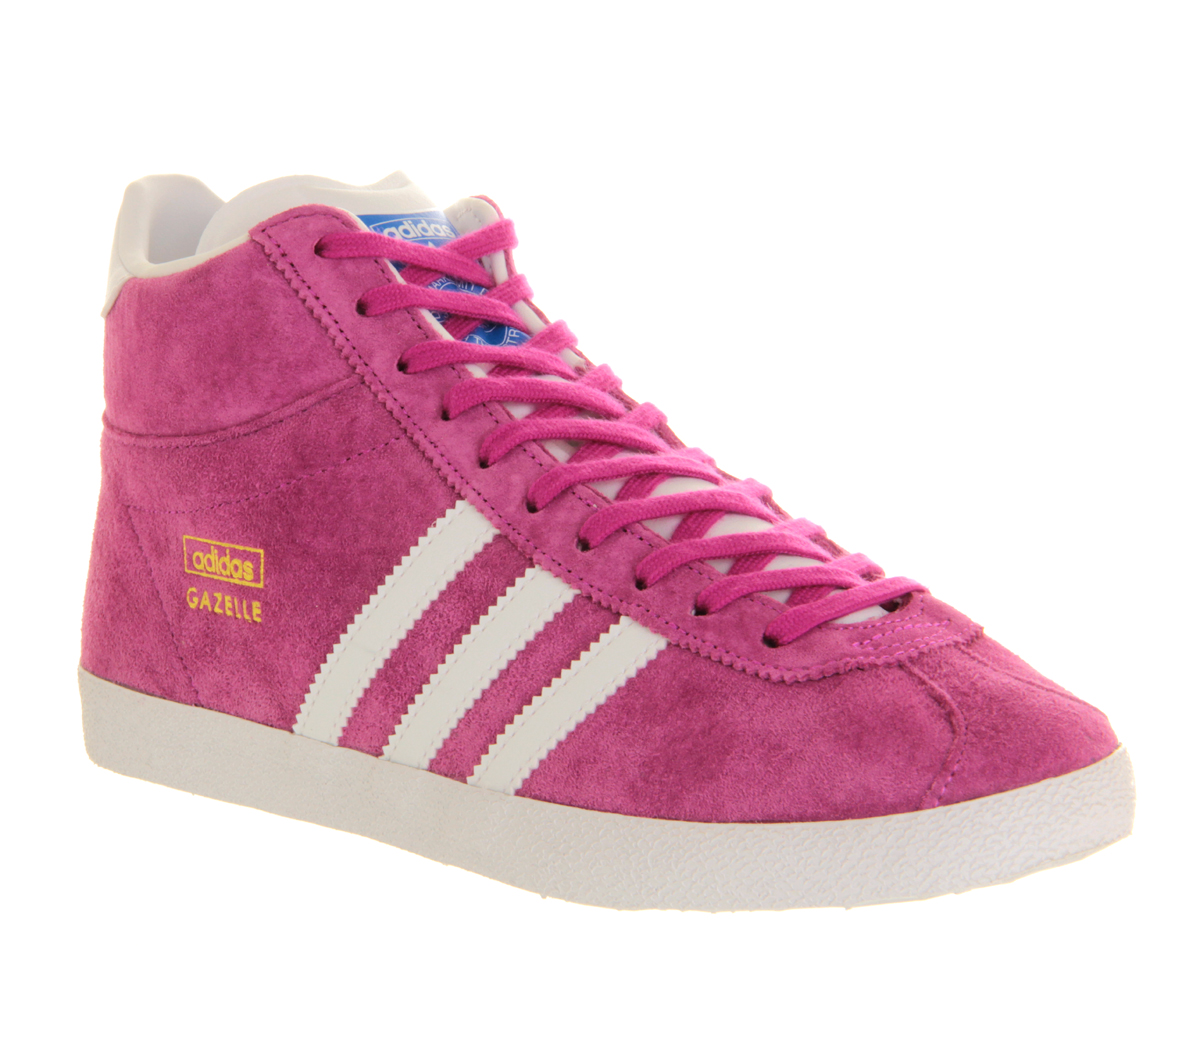 Adidas-Gazelle-Og-Mid-Trainers-Shoes